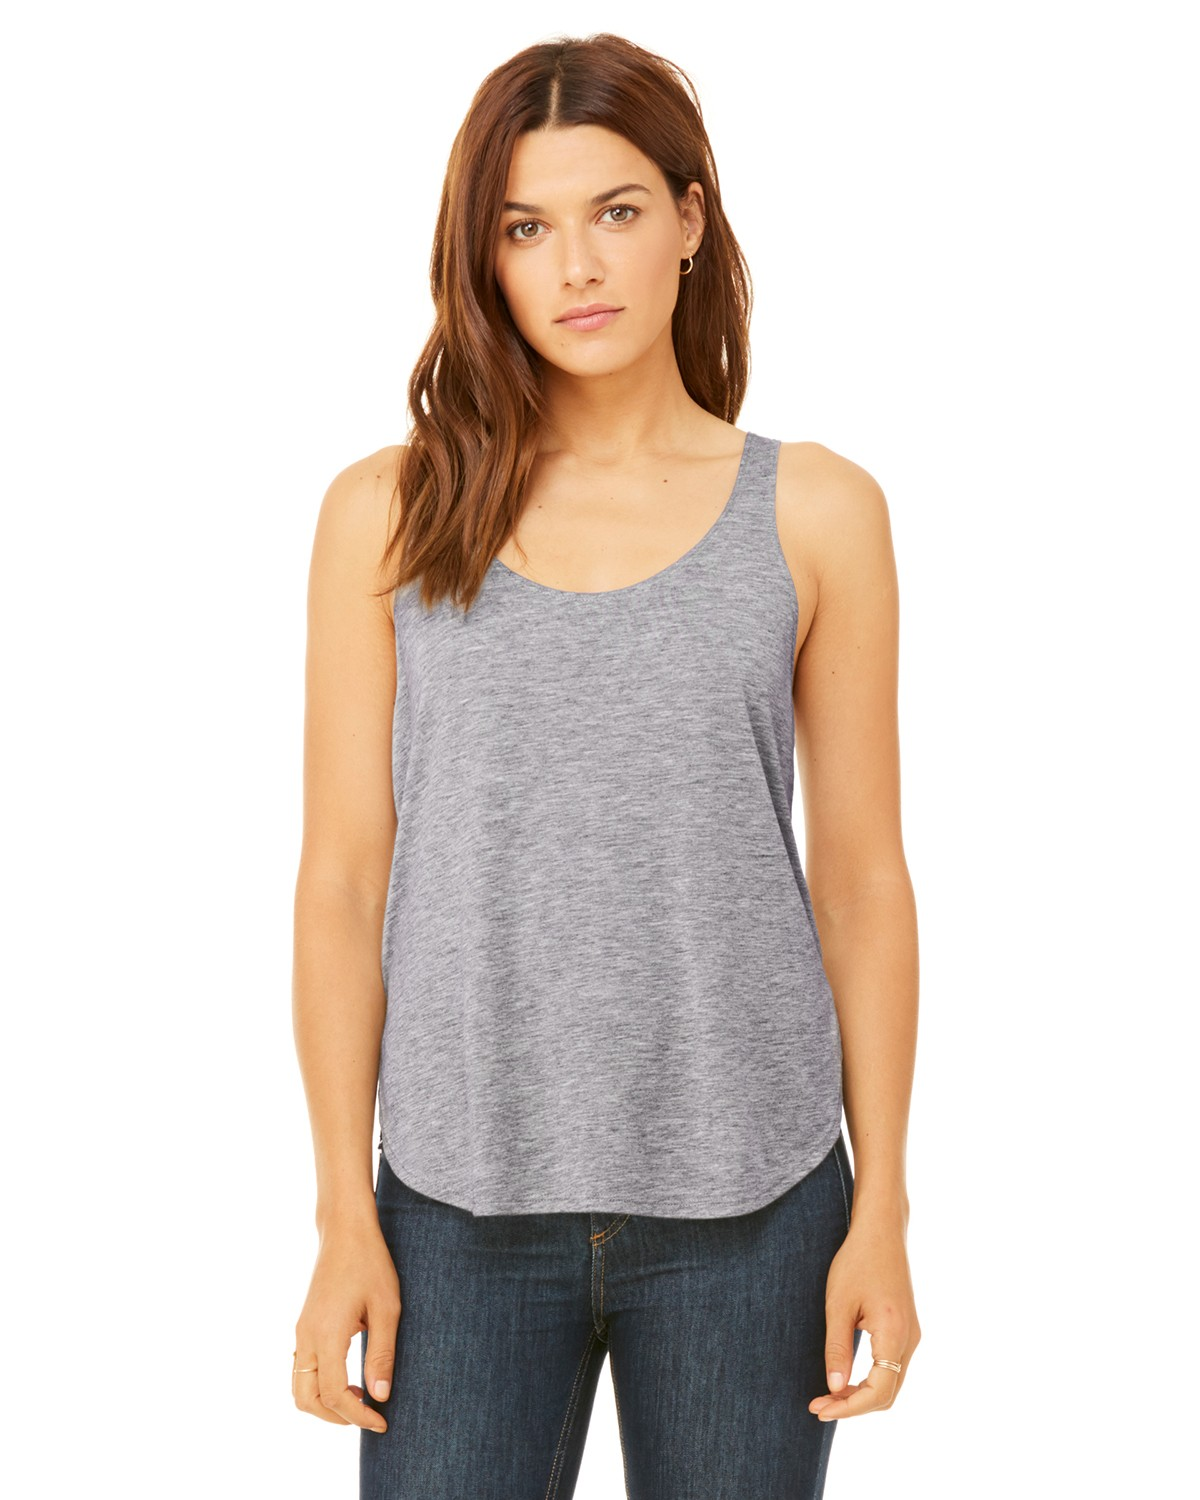 B8802 Bella + Canvas ATHLETIC HEATHER